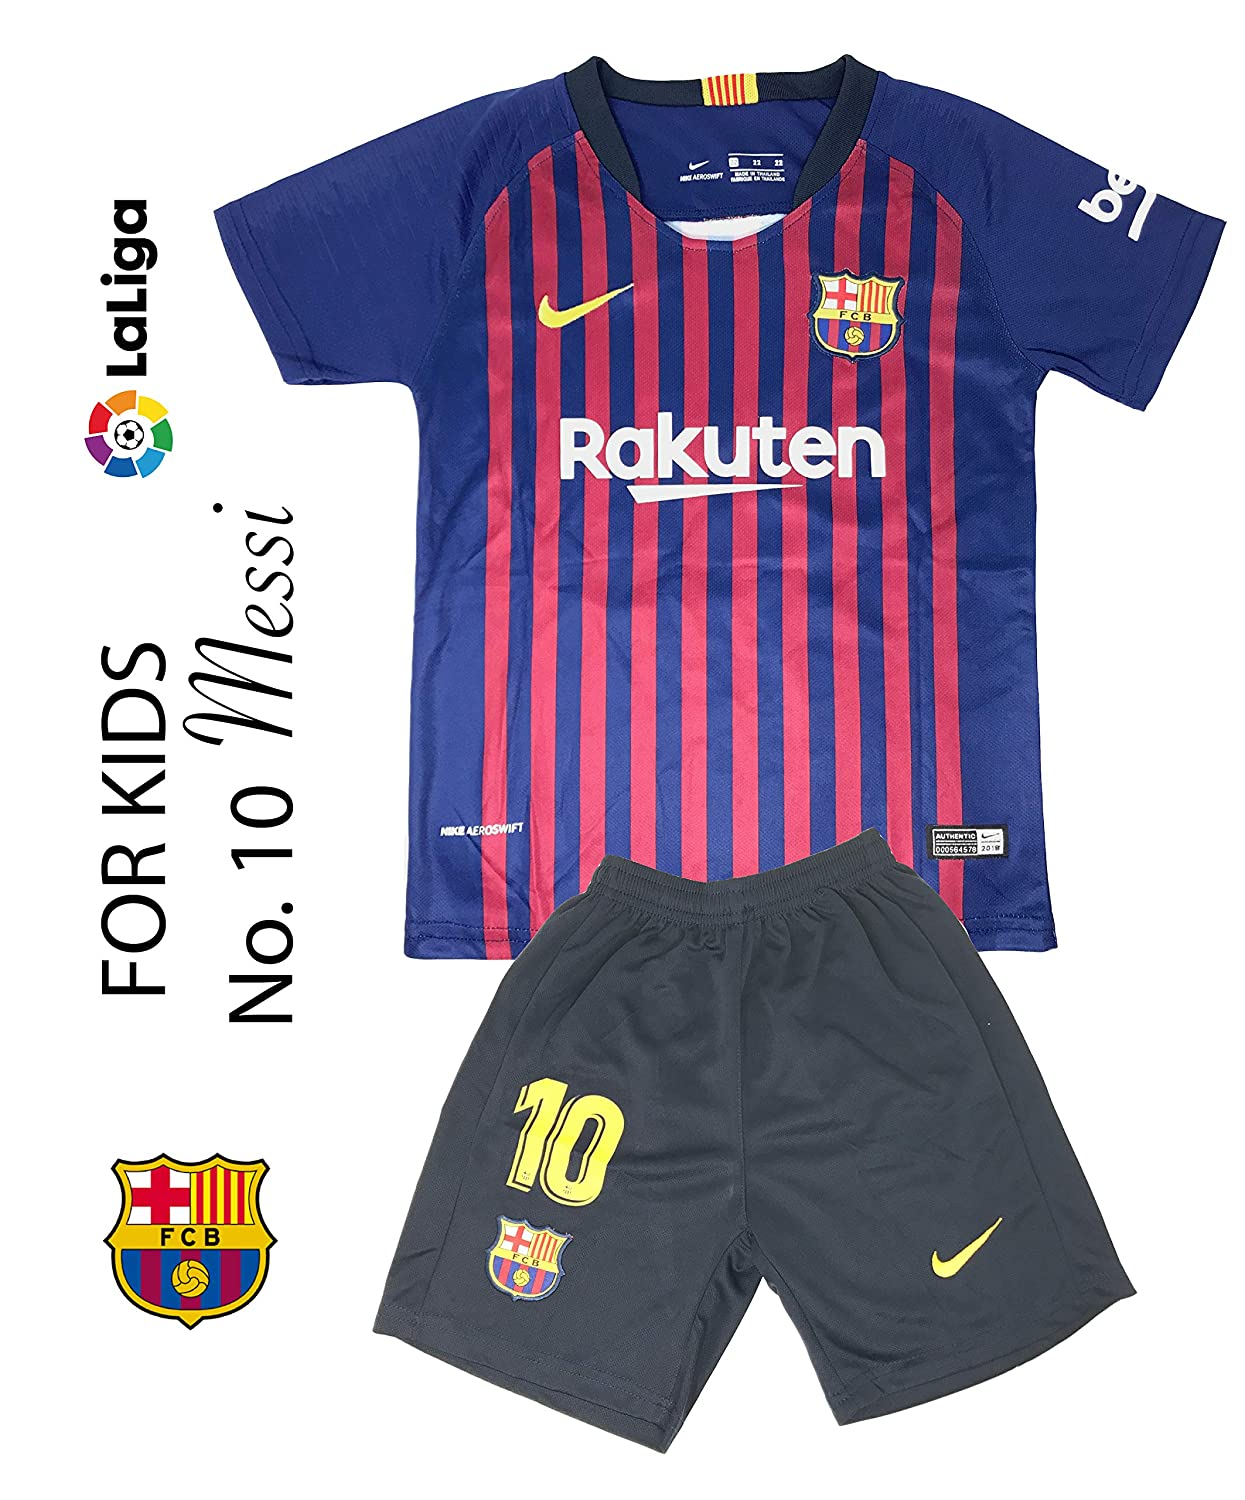 best sneakers e81fa ae303 The Soccer Jersey and Short for Kids on Season 2019 - Best Soccer KIT for  Kids - Juventus Ronaldo 7 - Barcelona FC 10 Messi - Real Madrid 10 Modric